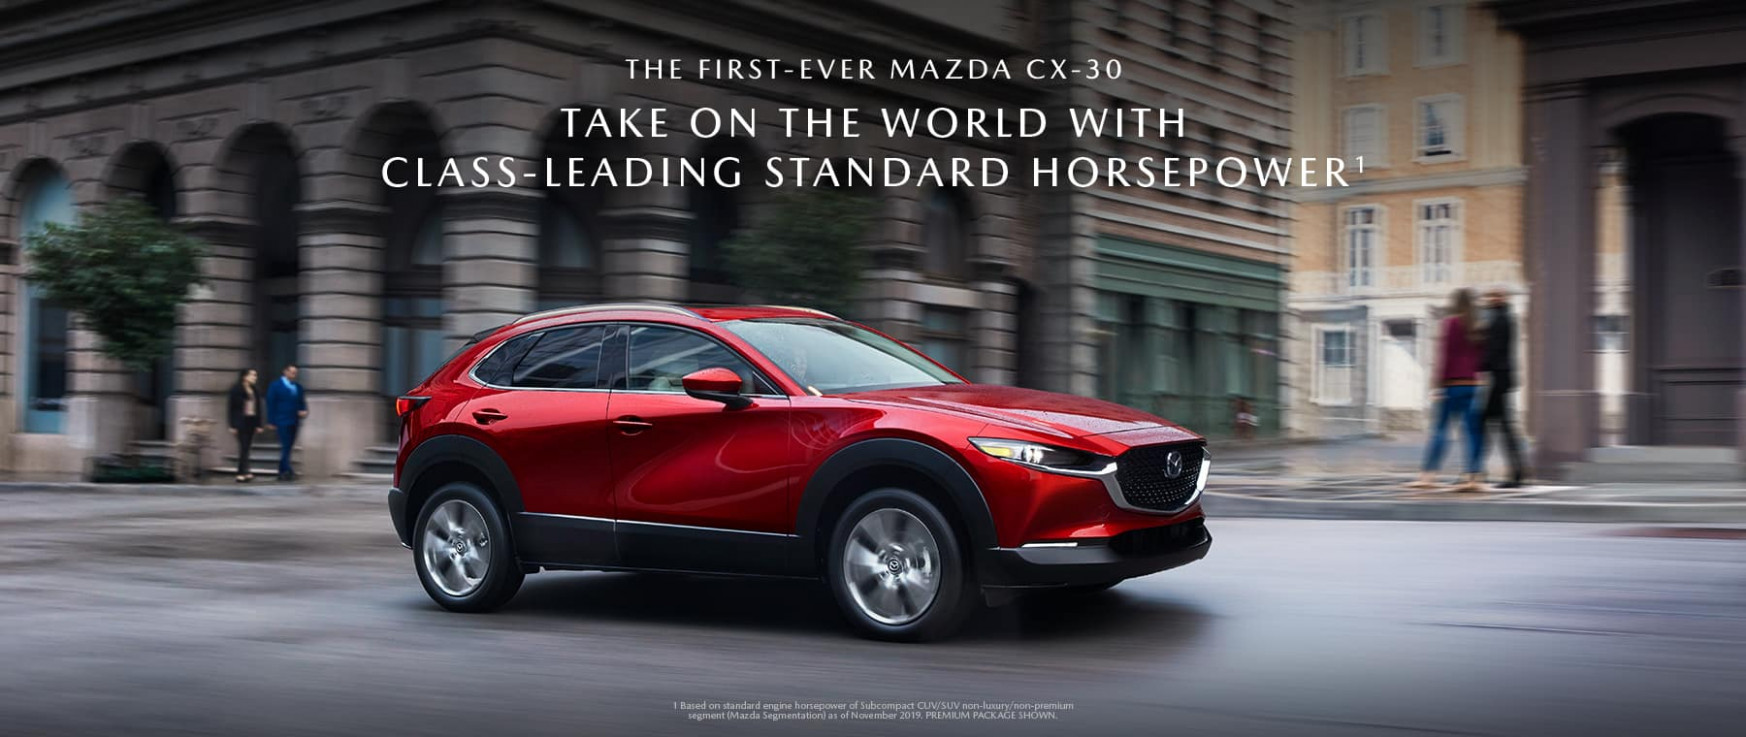 Serra Mazda | Mazda Dealer in Akron, OH - mazda end of financial year sale 2020